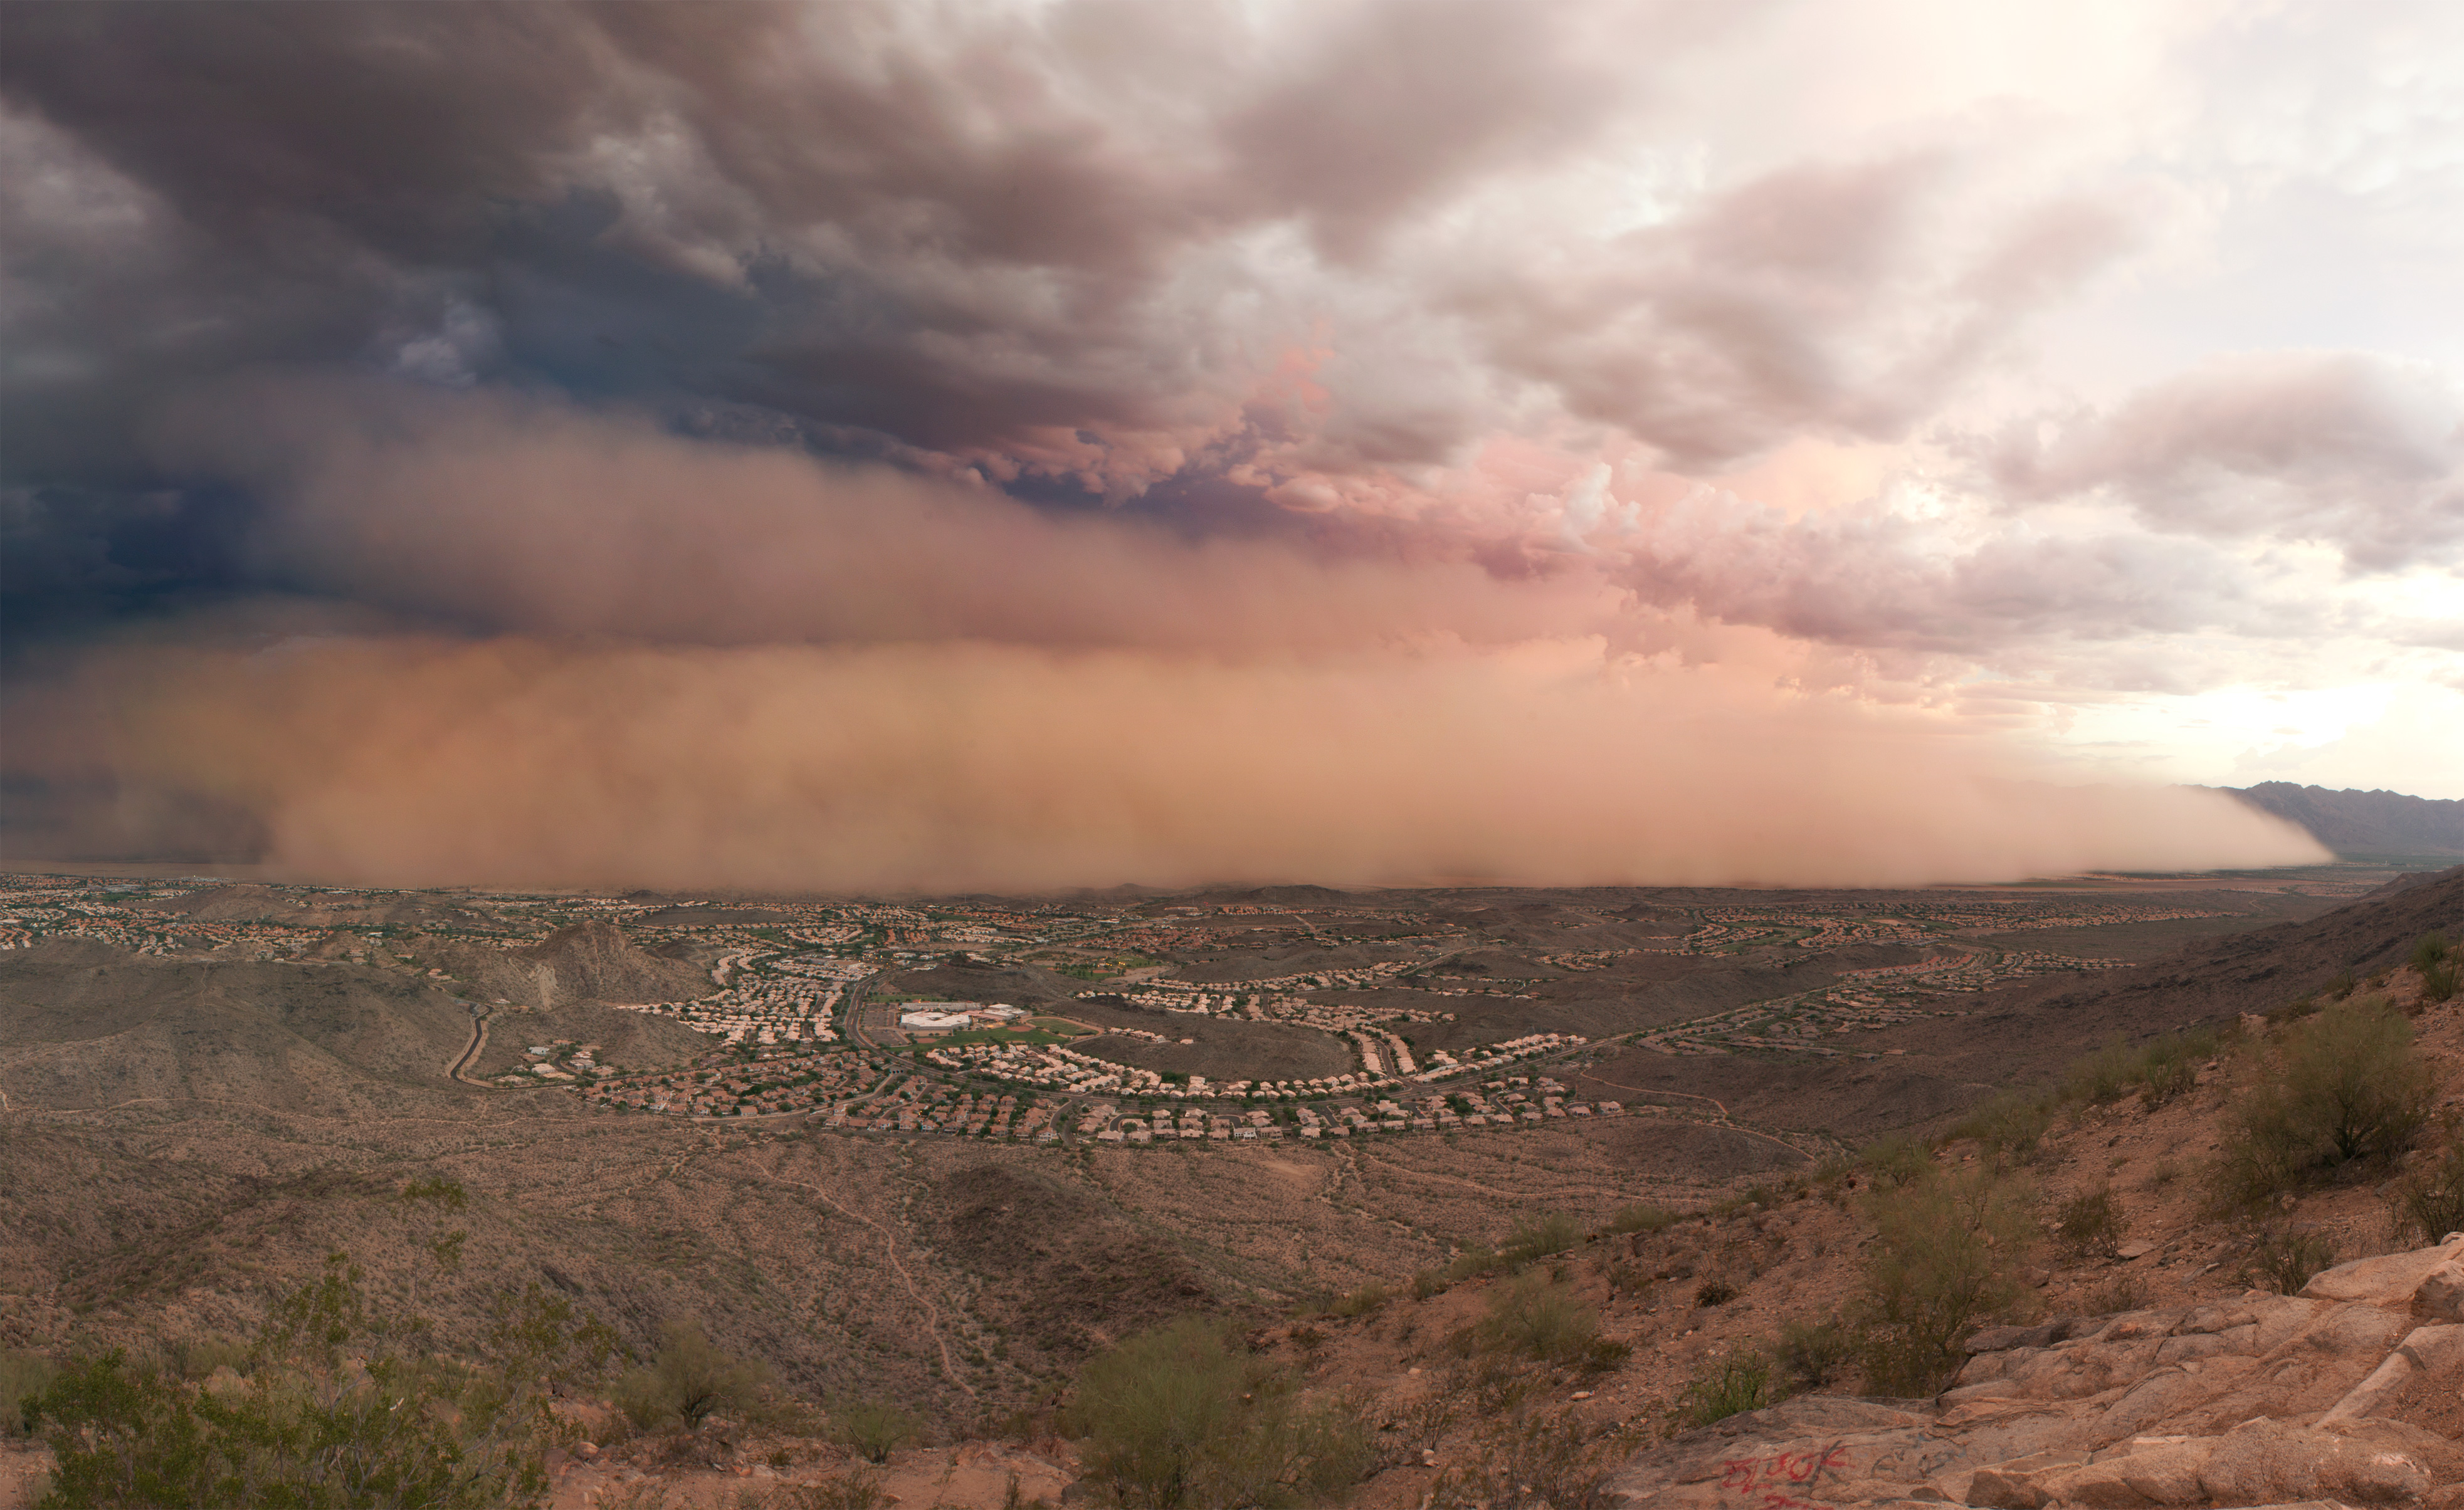 Duststorm. Credit: Alan Stark (CC BY-SA 2.0) https://www.flickr.com/photos/squeaks2569/5999217357